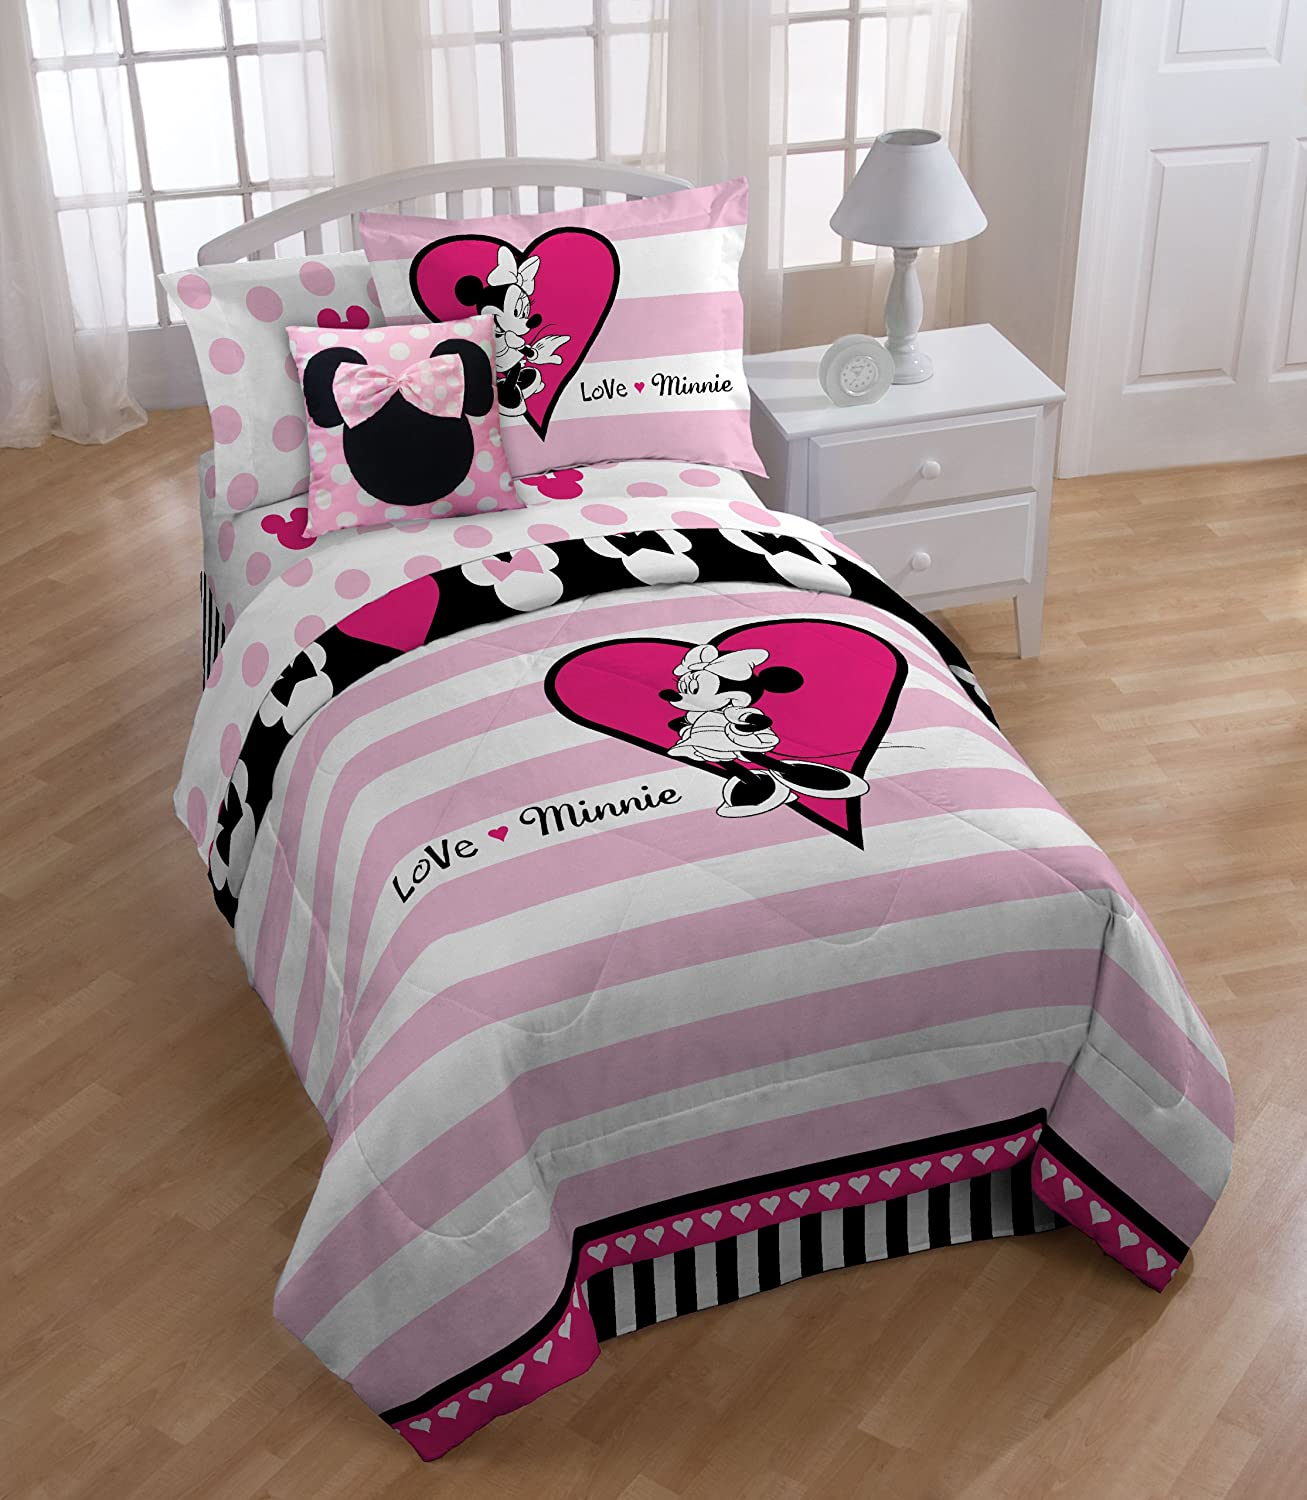 Disney Minnie Mouse Hearts Twin Sheet Set